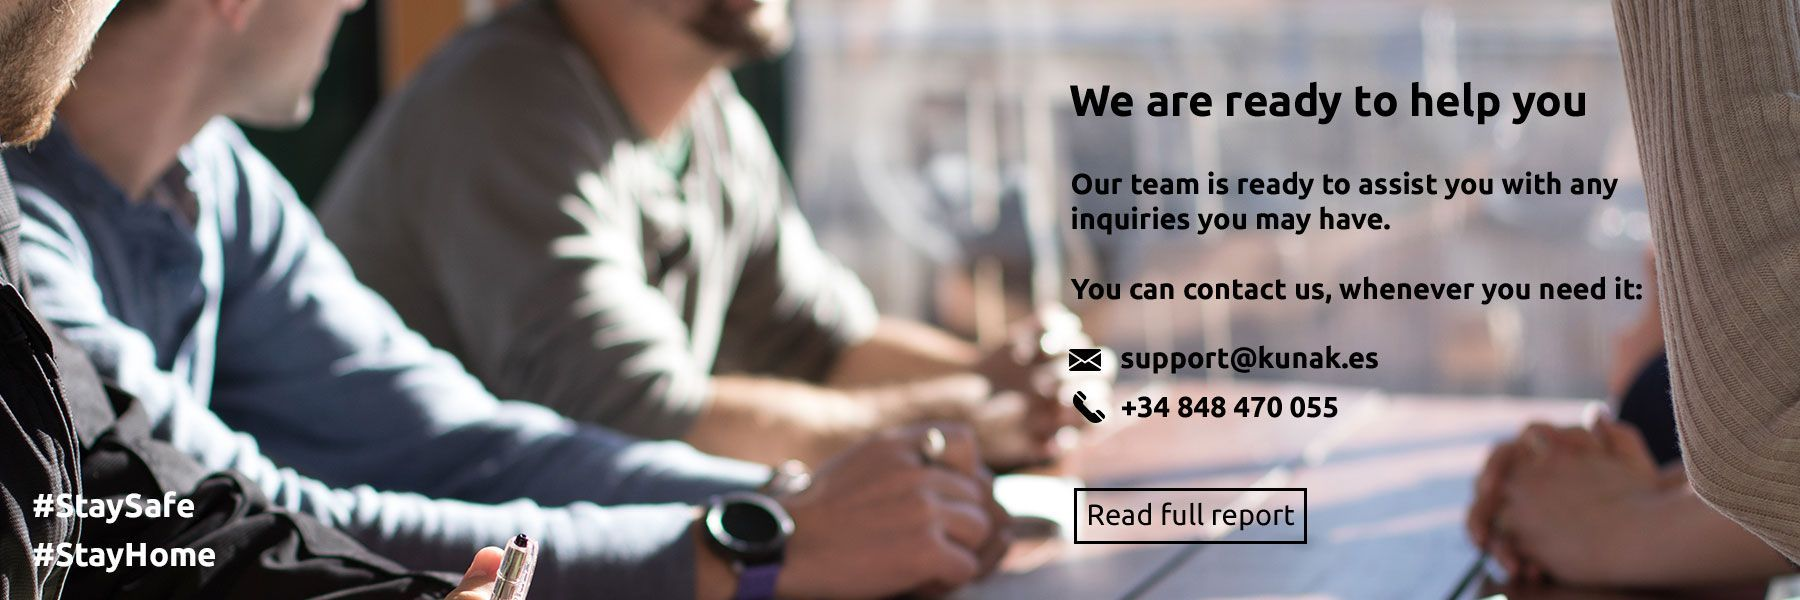 We are ready to help you